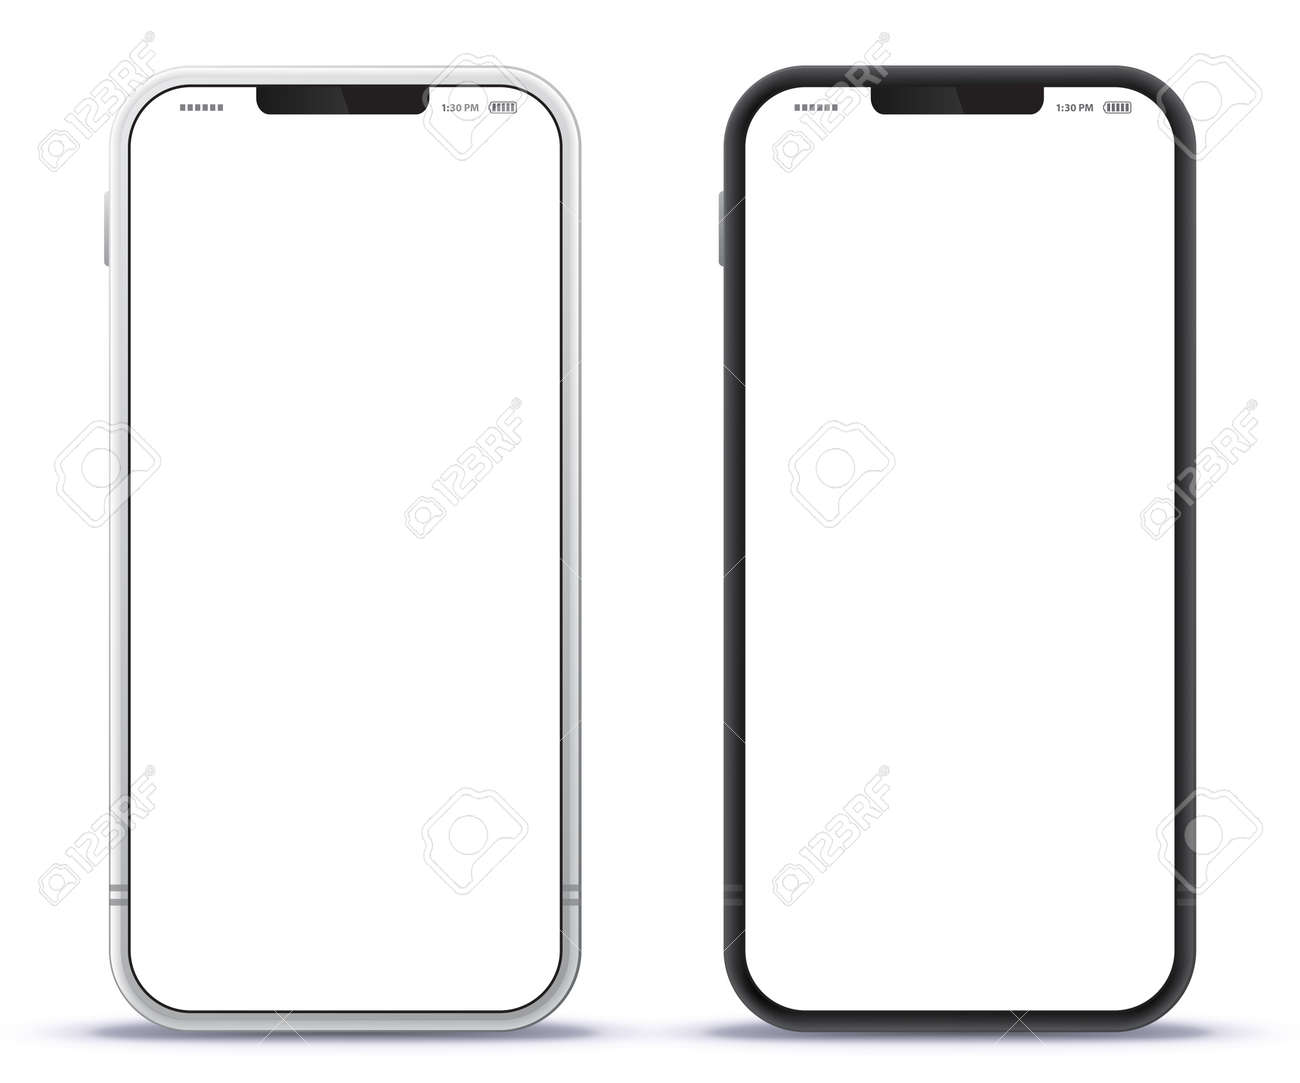 Mobile Phone Black and Silver Colored Design Concept. Vector Smartphone Mockup With Frameless White Screen. Isolated on Transparent Background. - 166388833